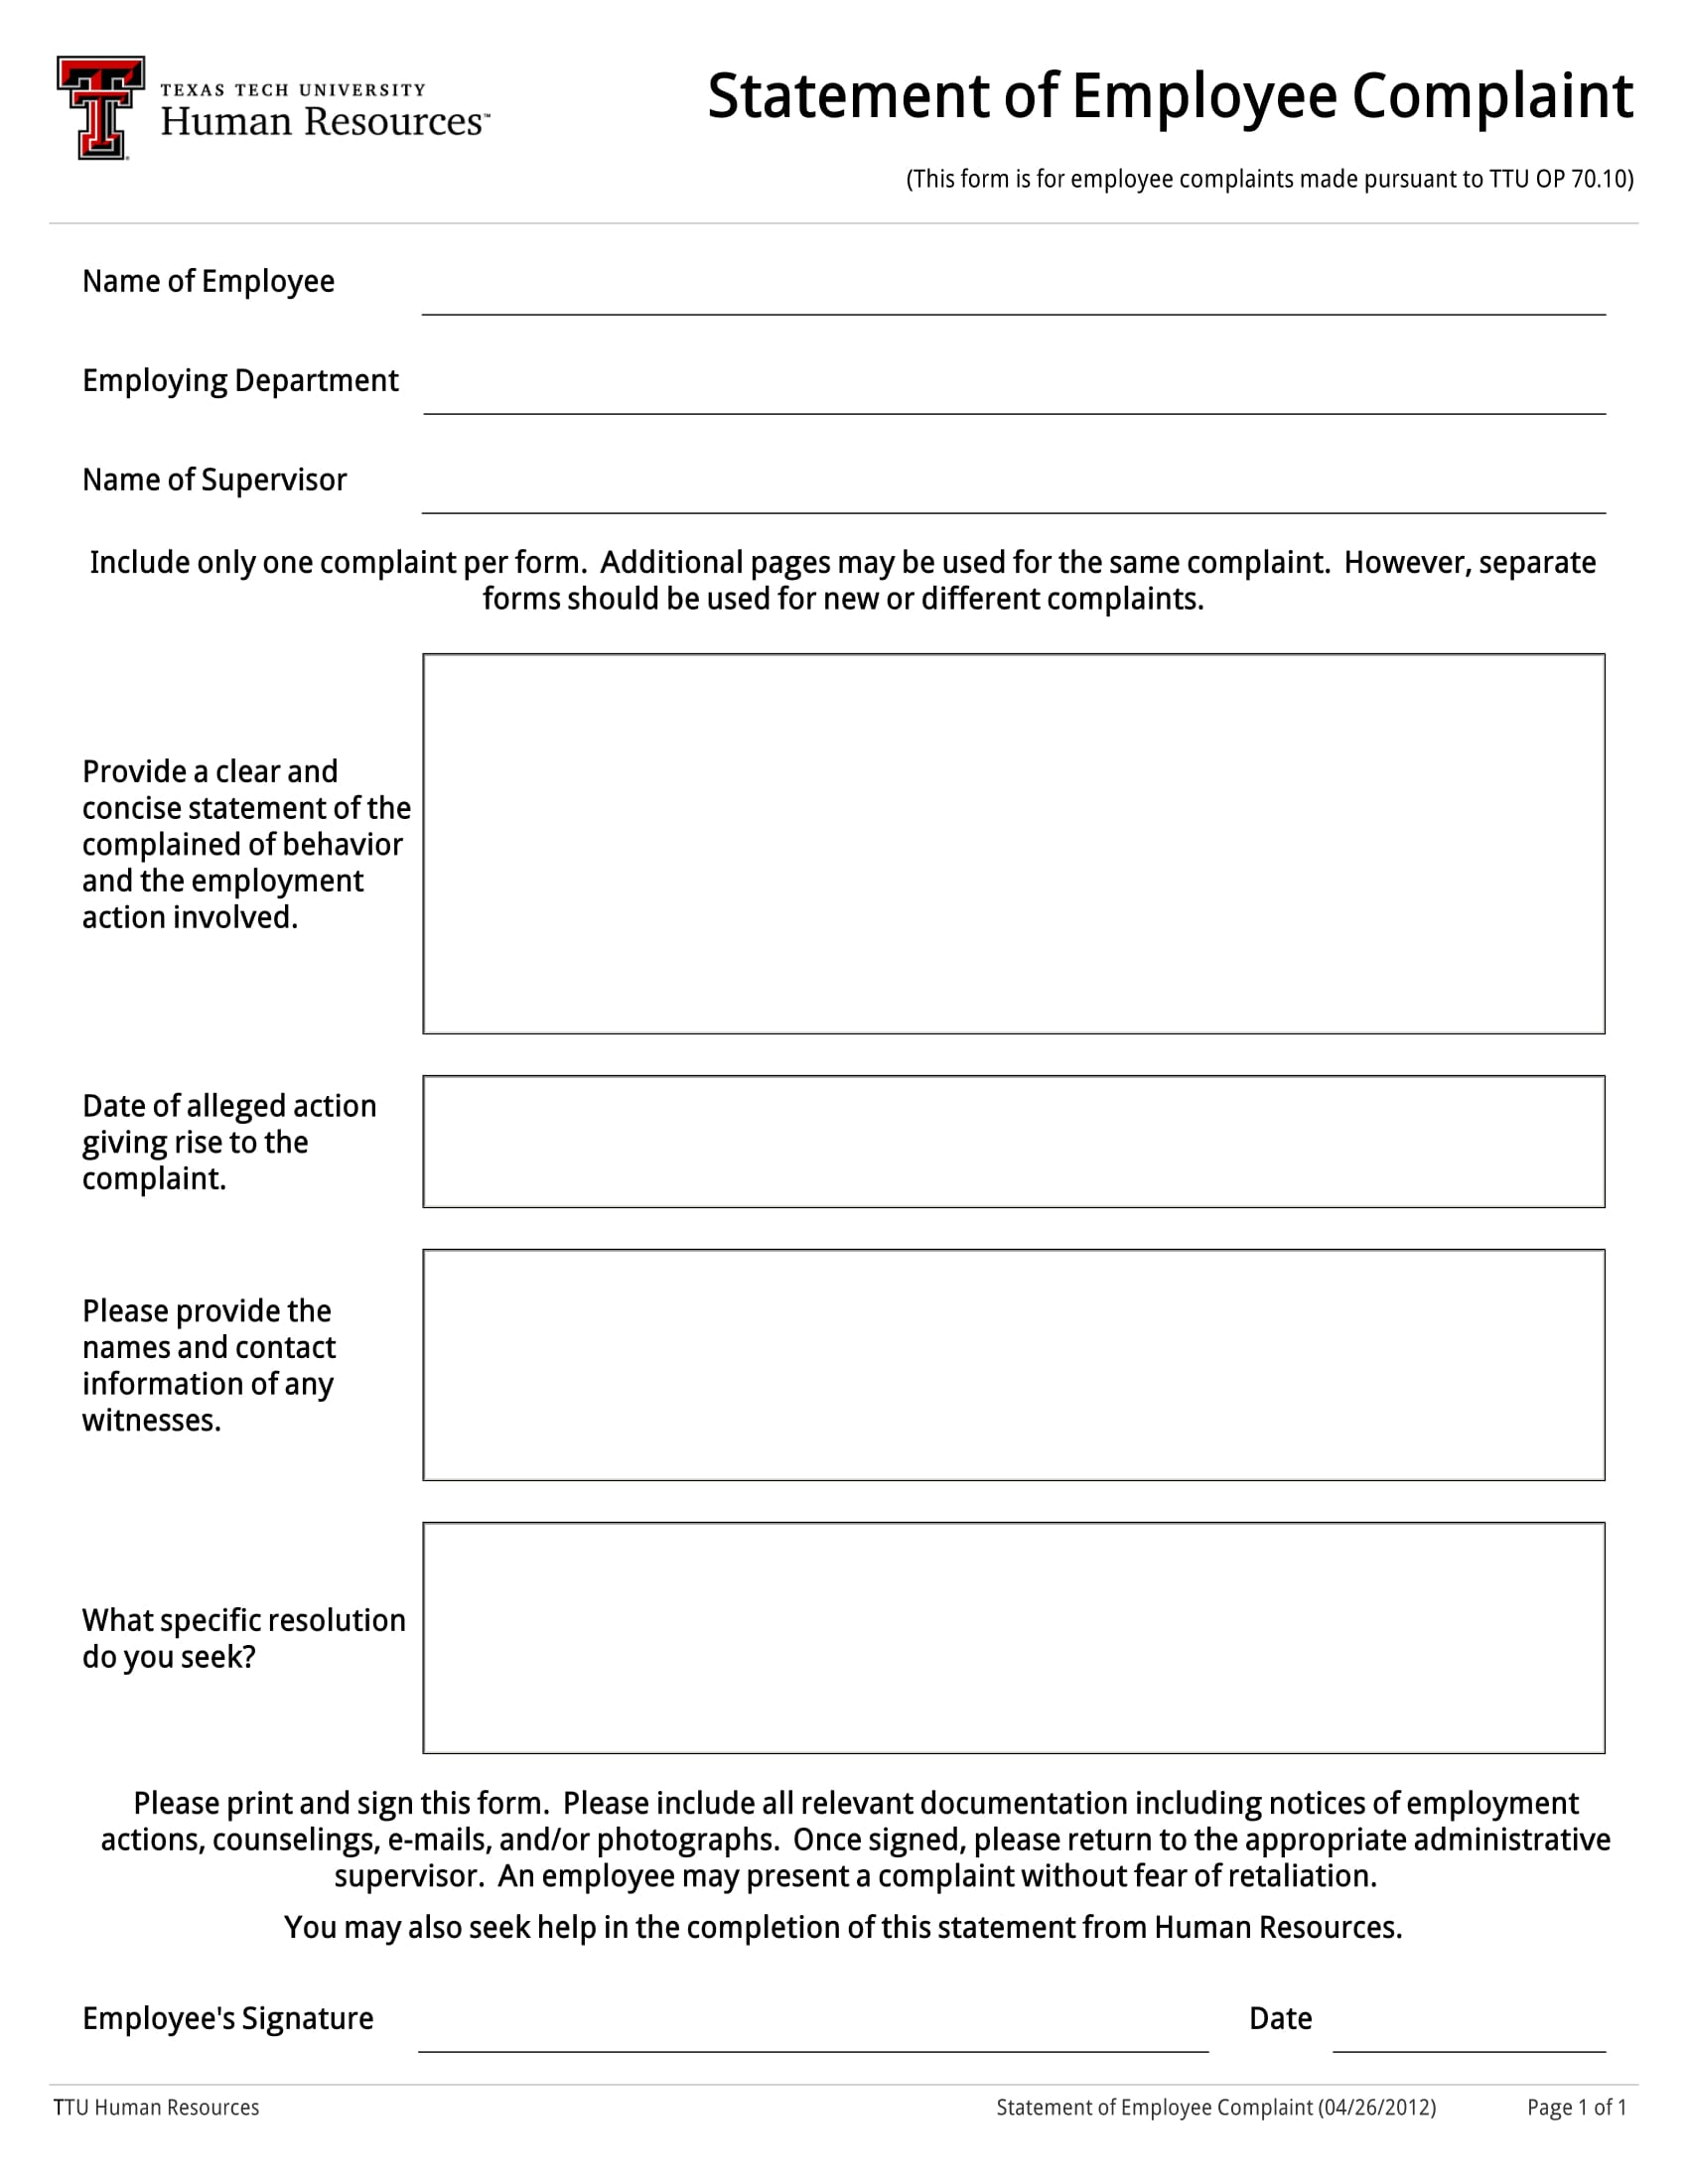 employee complaint statement form 1